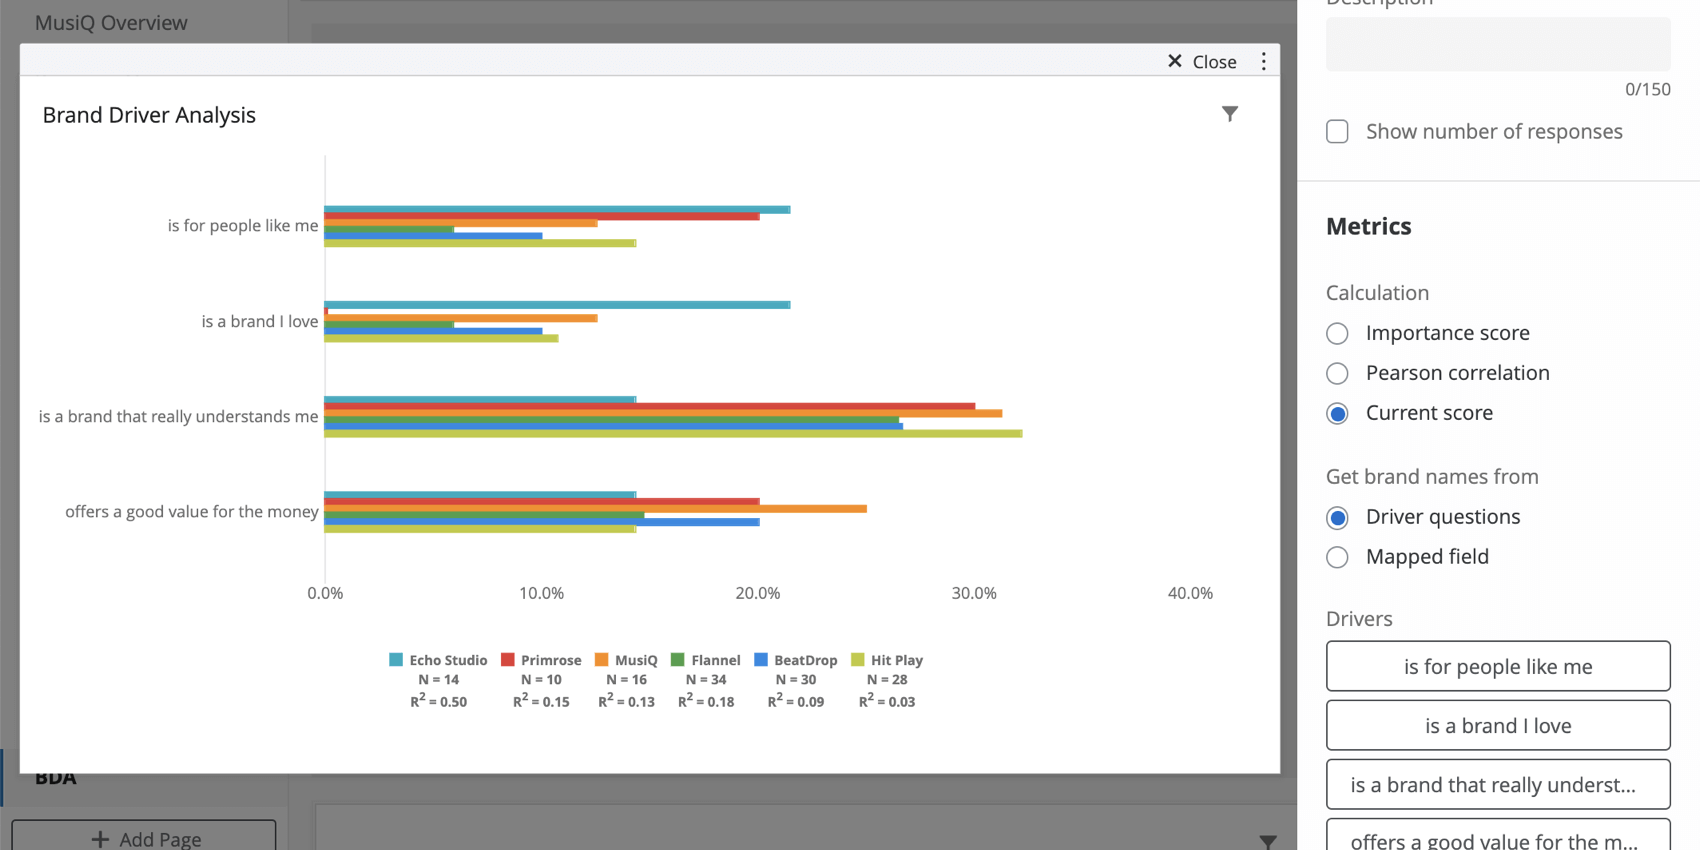 Current core set. This chart looks like a bar chart with brand imagery broken out along the left and different colored bars representing different brands